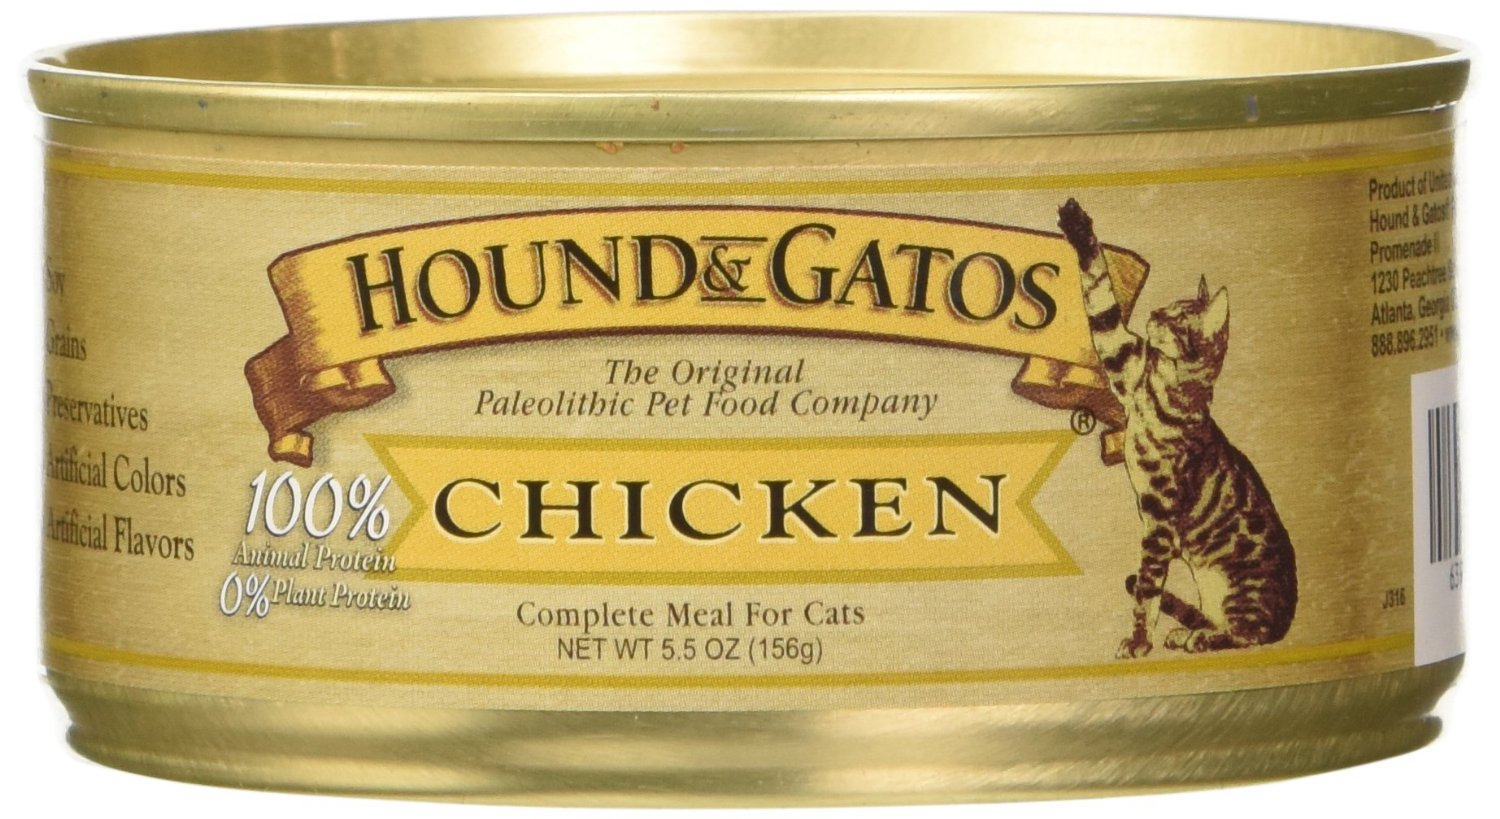 A picture of Hound & Gatos, which is a best cat food